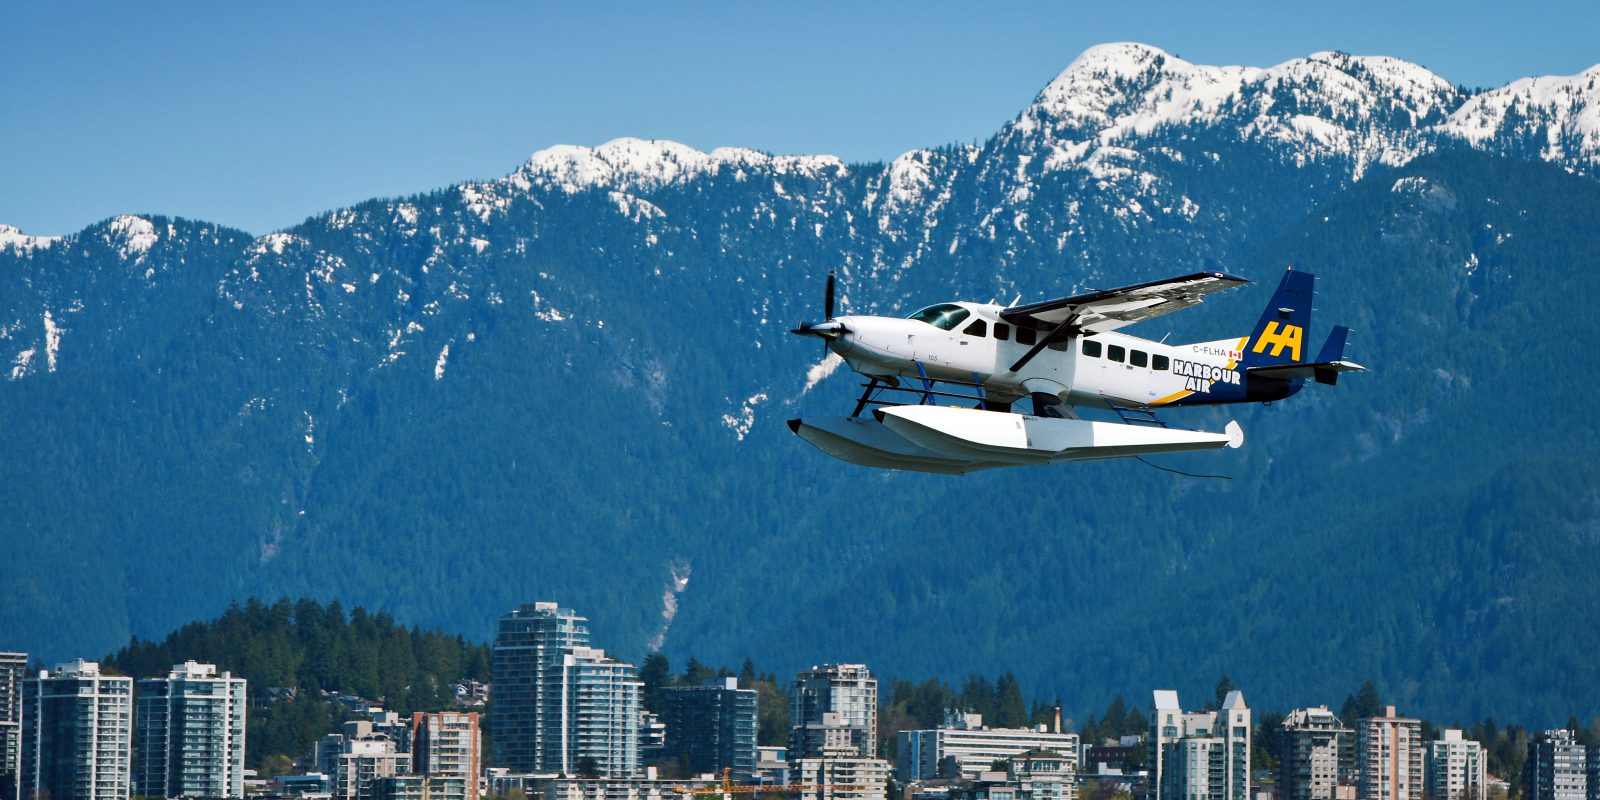 Bmw North Vancouver >> Harbour Air to convert all its seaplanes to electric for first all-electric airline - Electrek